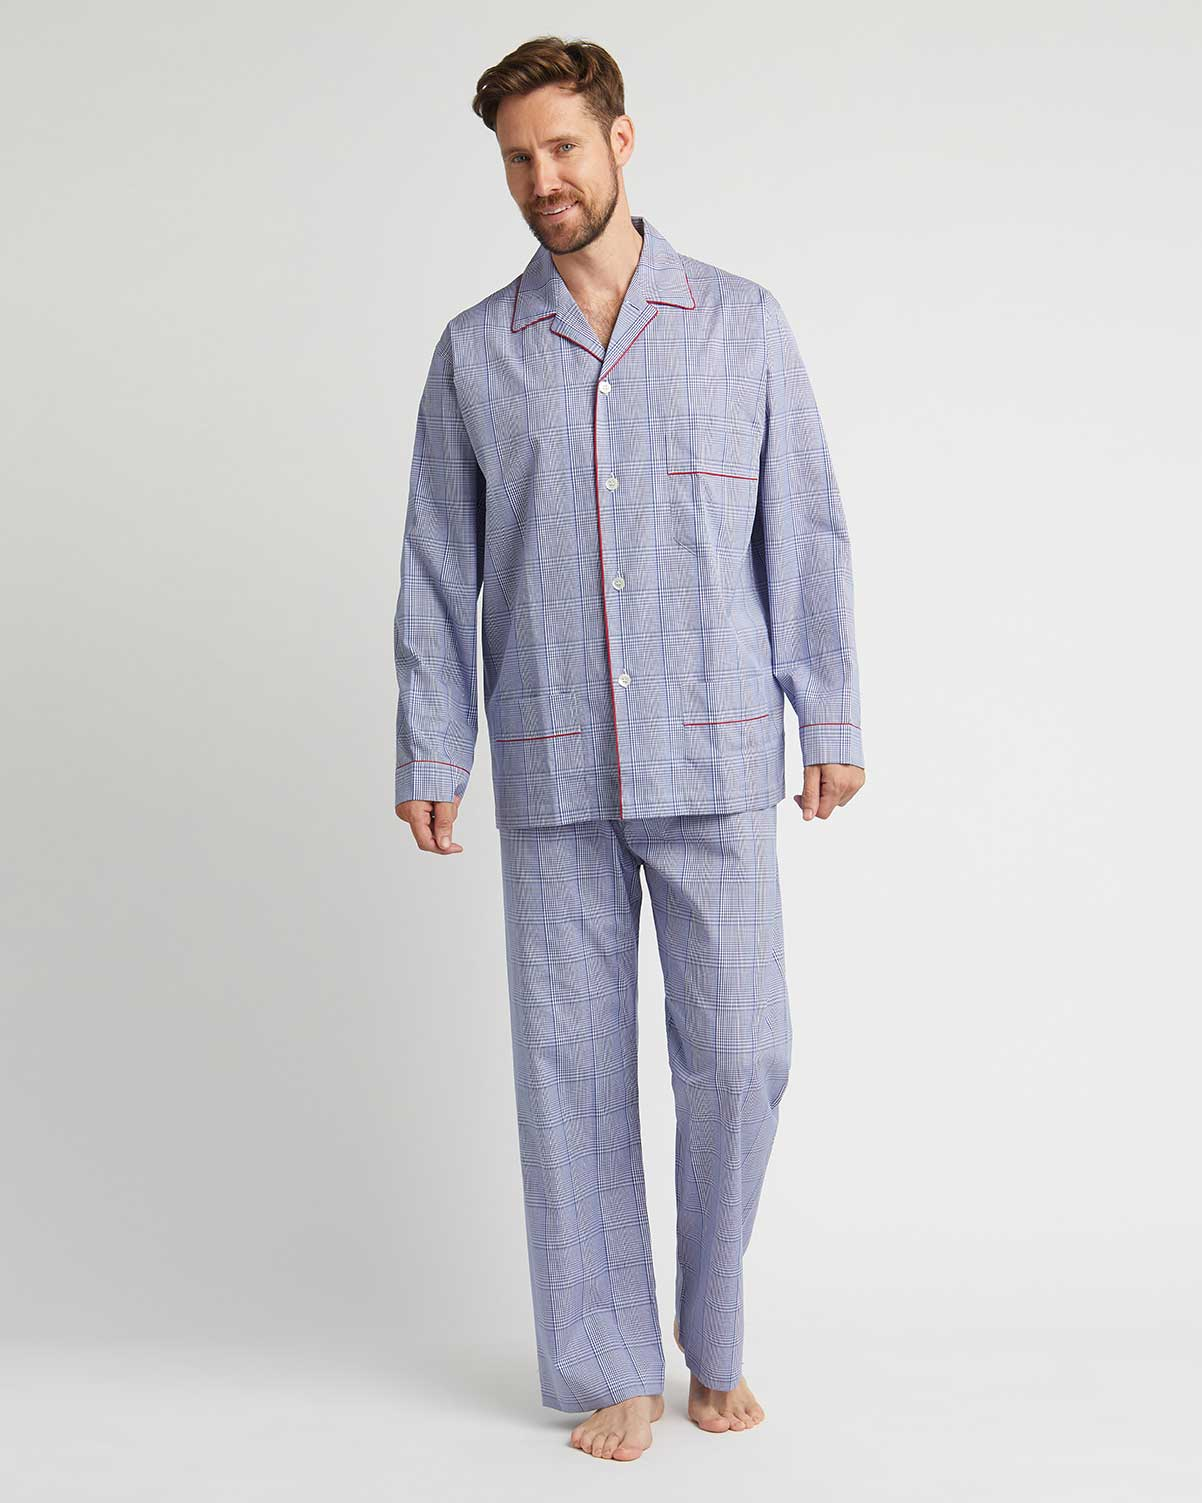 Men's Two-Fold Cotton Pyjamas - TF31